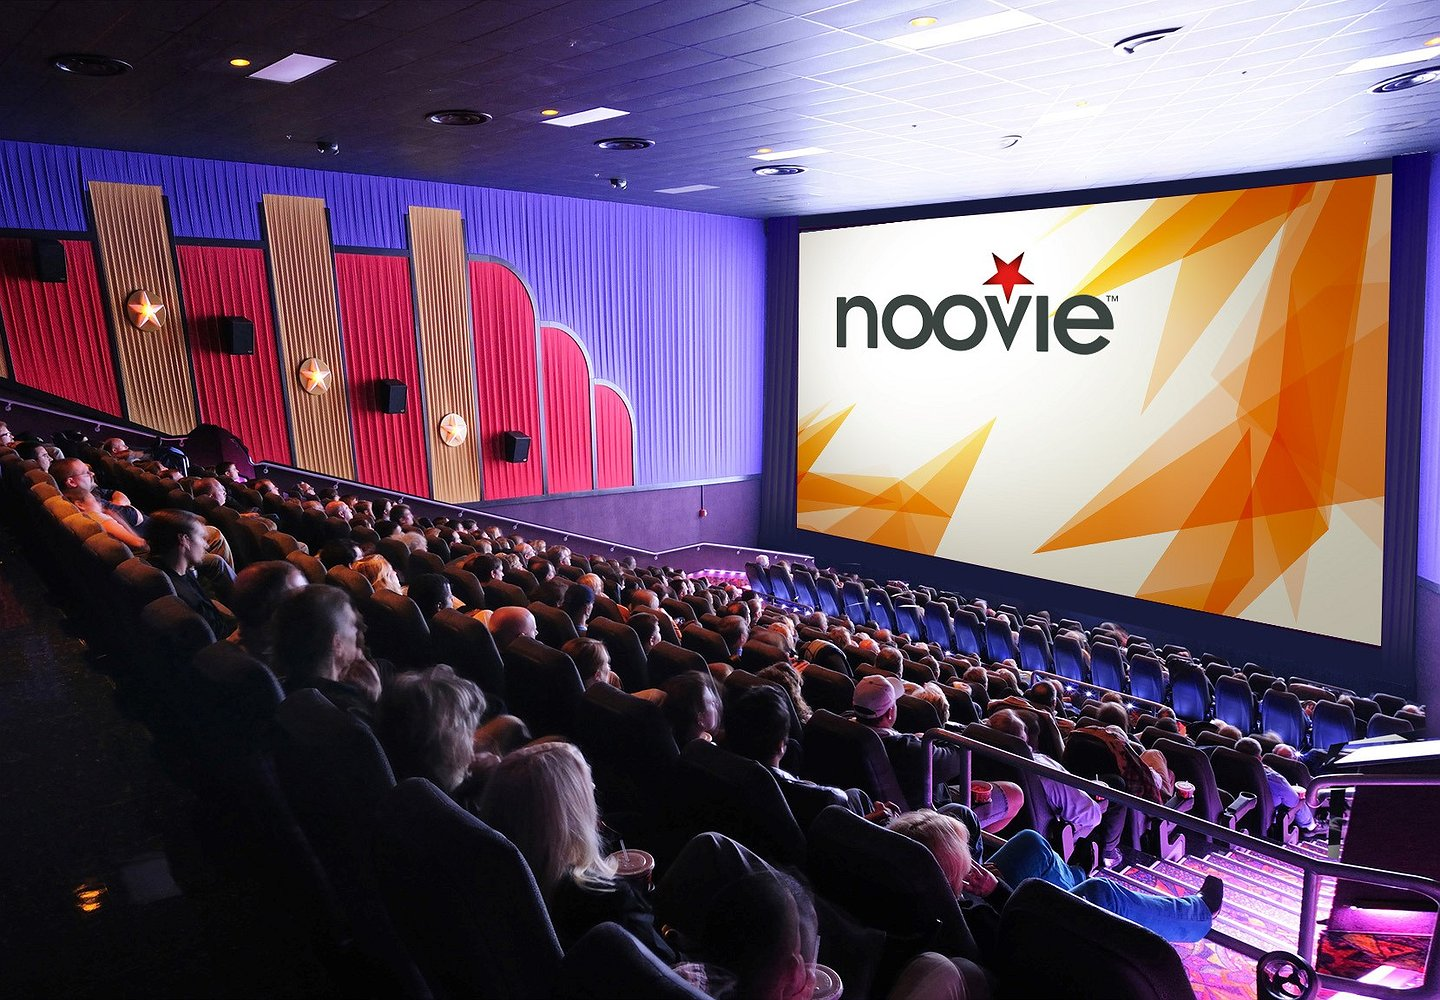 """Noovie"" Takes Film Fans Behind the Scenes and Beyond the Theater"